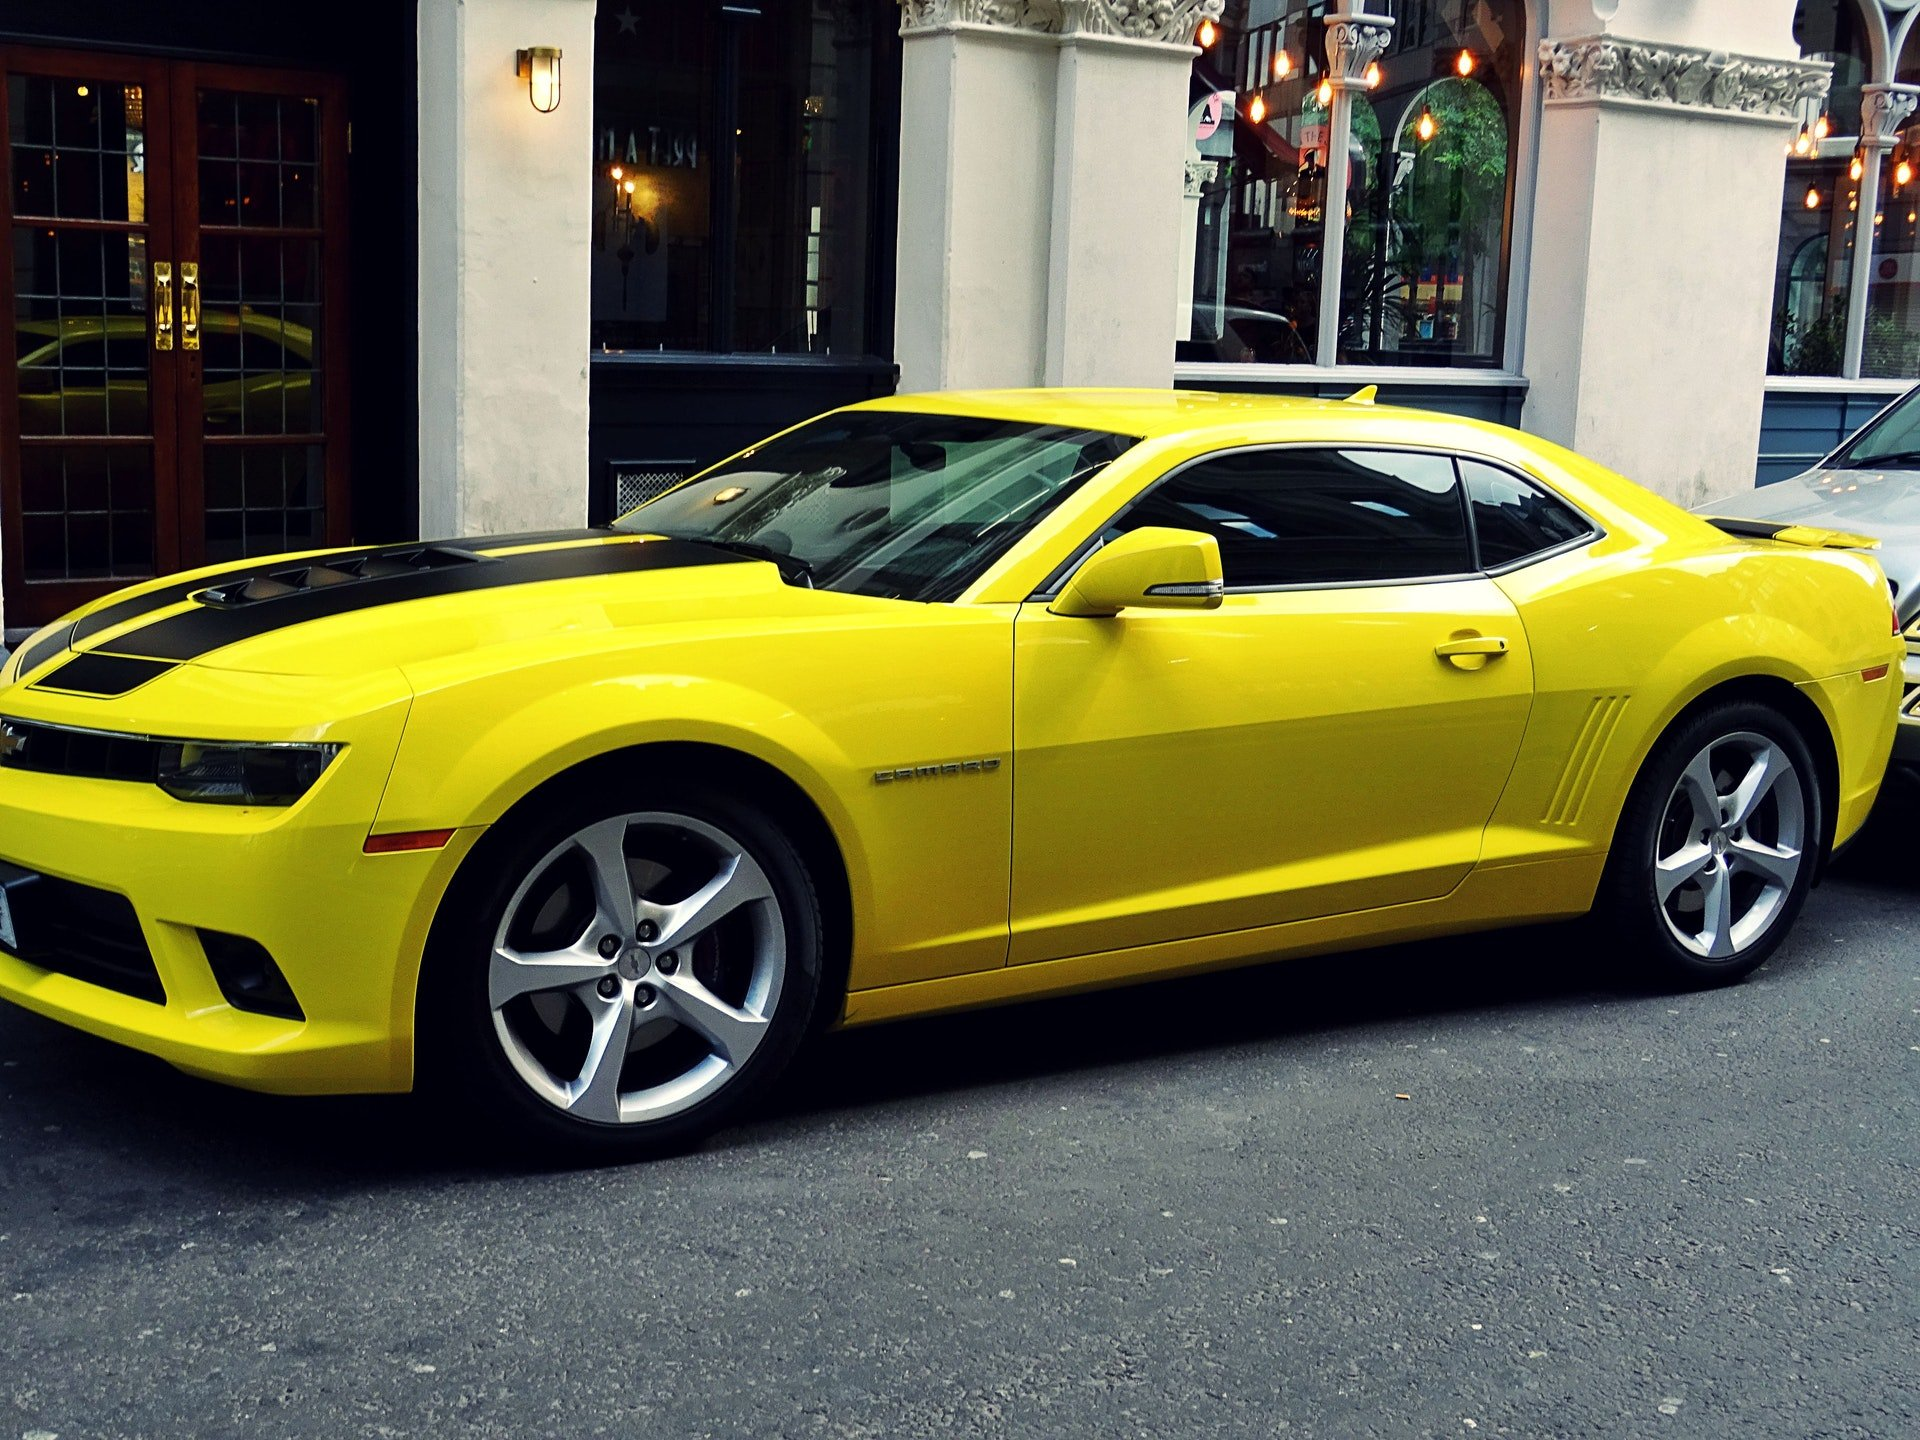 Photo of a yellow chevrolet car | Photo: Pexels